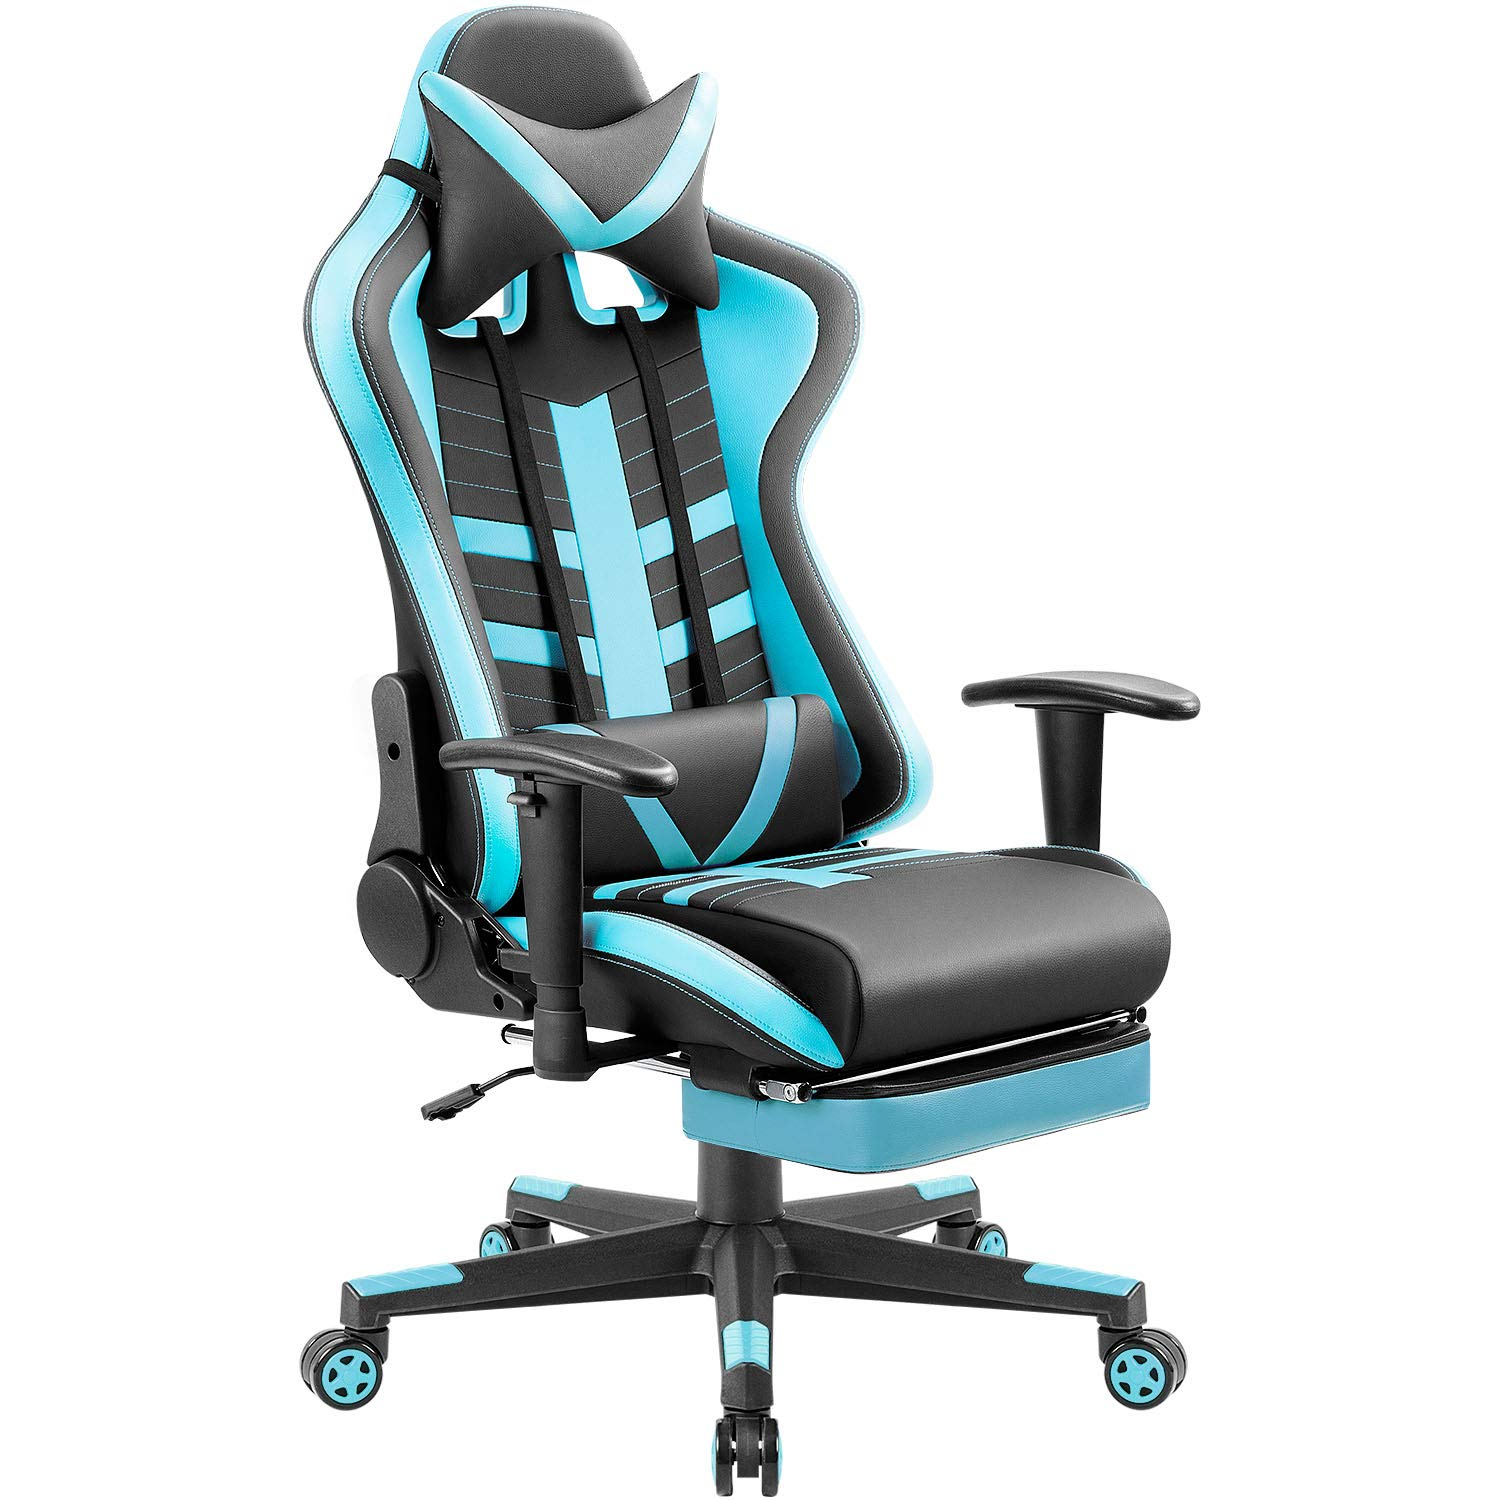 Homall Gaming Chair Ergonomic High-Back Racing Chair Pu Leather Bucket Seat,Computer Swivel Office Chair Headrest and Lumbar Support Executive Desk Chair with Footrest, Black/Blue by Homall